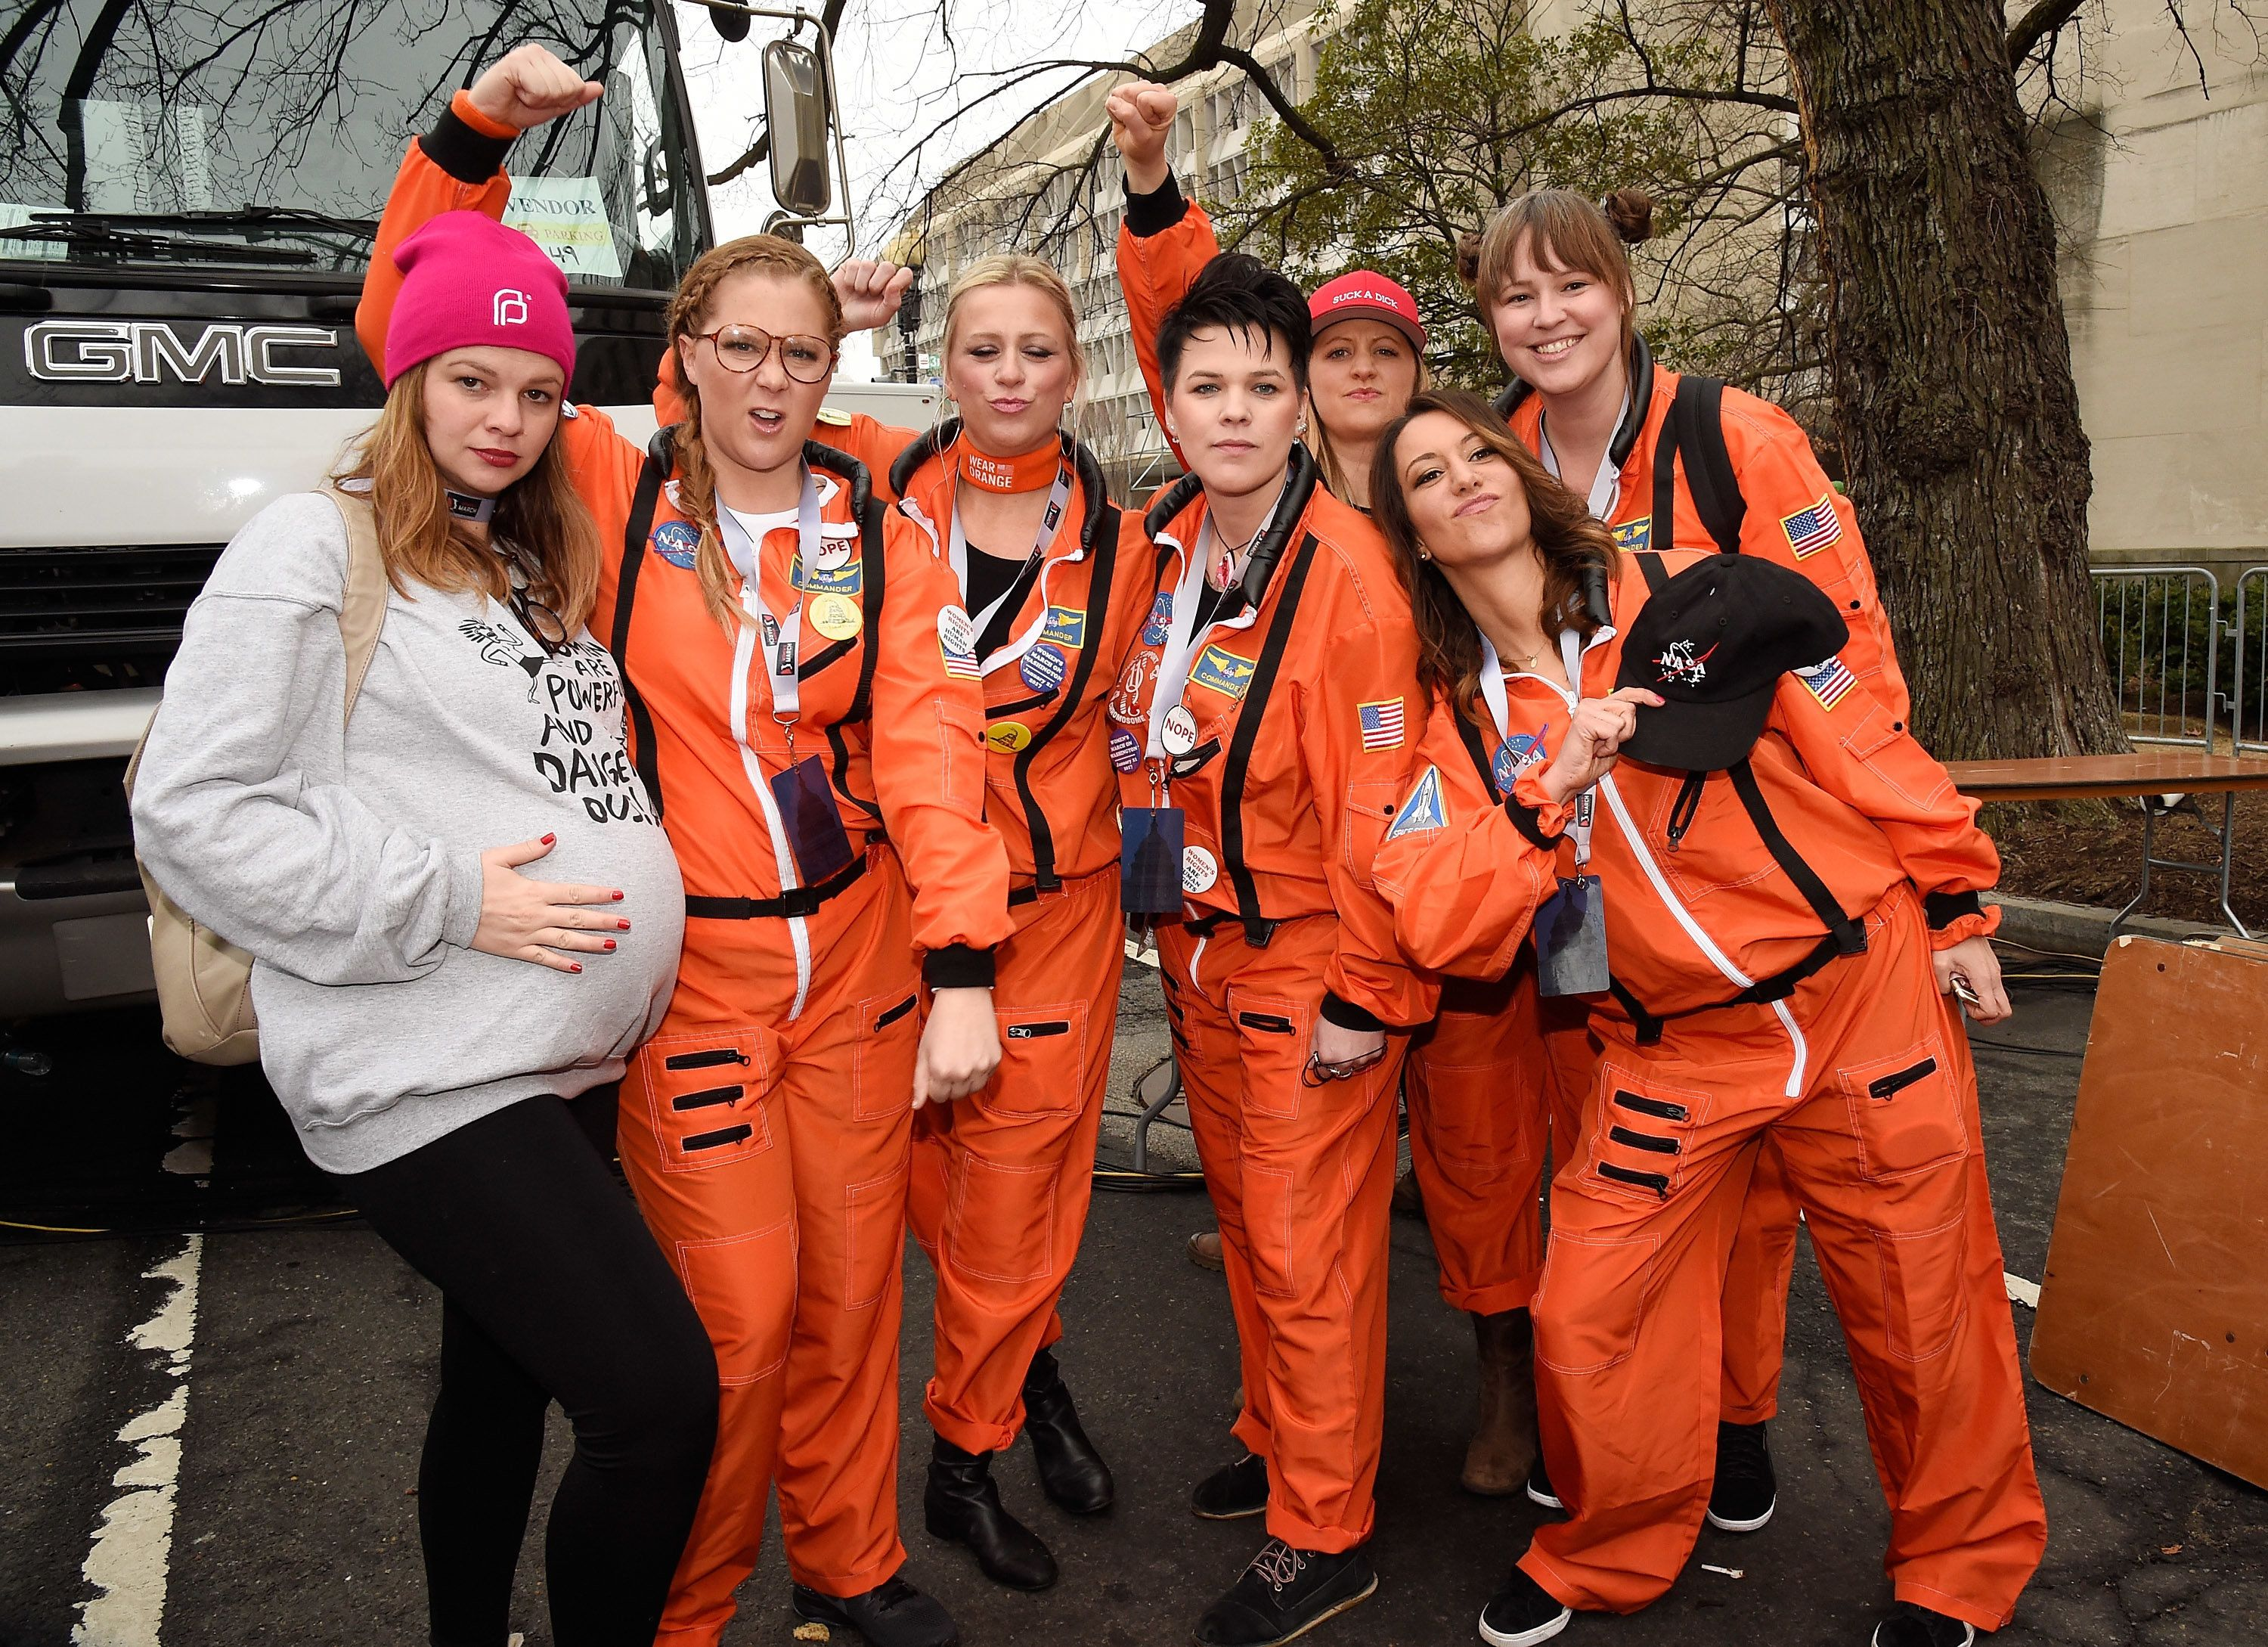 Amber Tamblyn, left, with Amy Schumer and others at the 2017 Women's March on Washington.